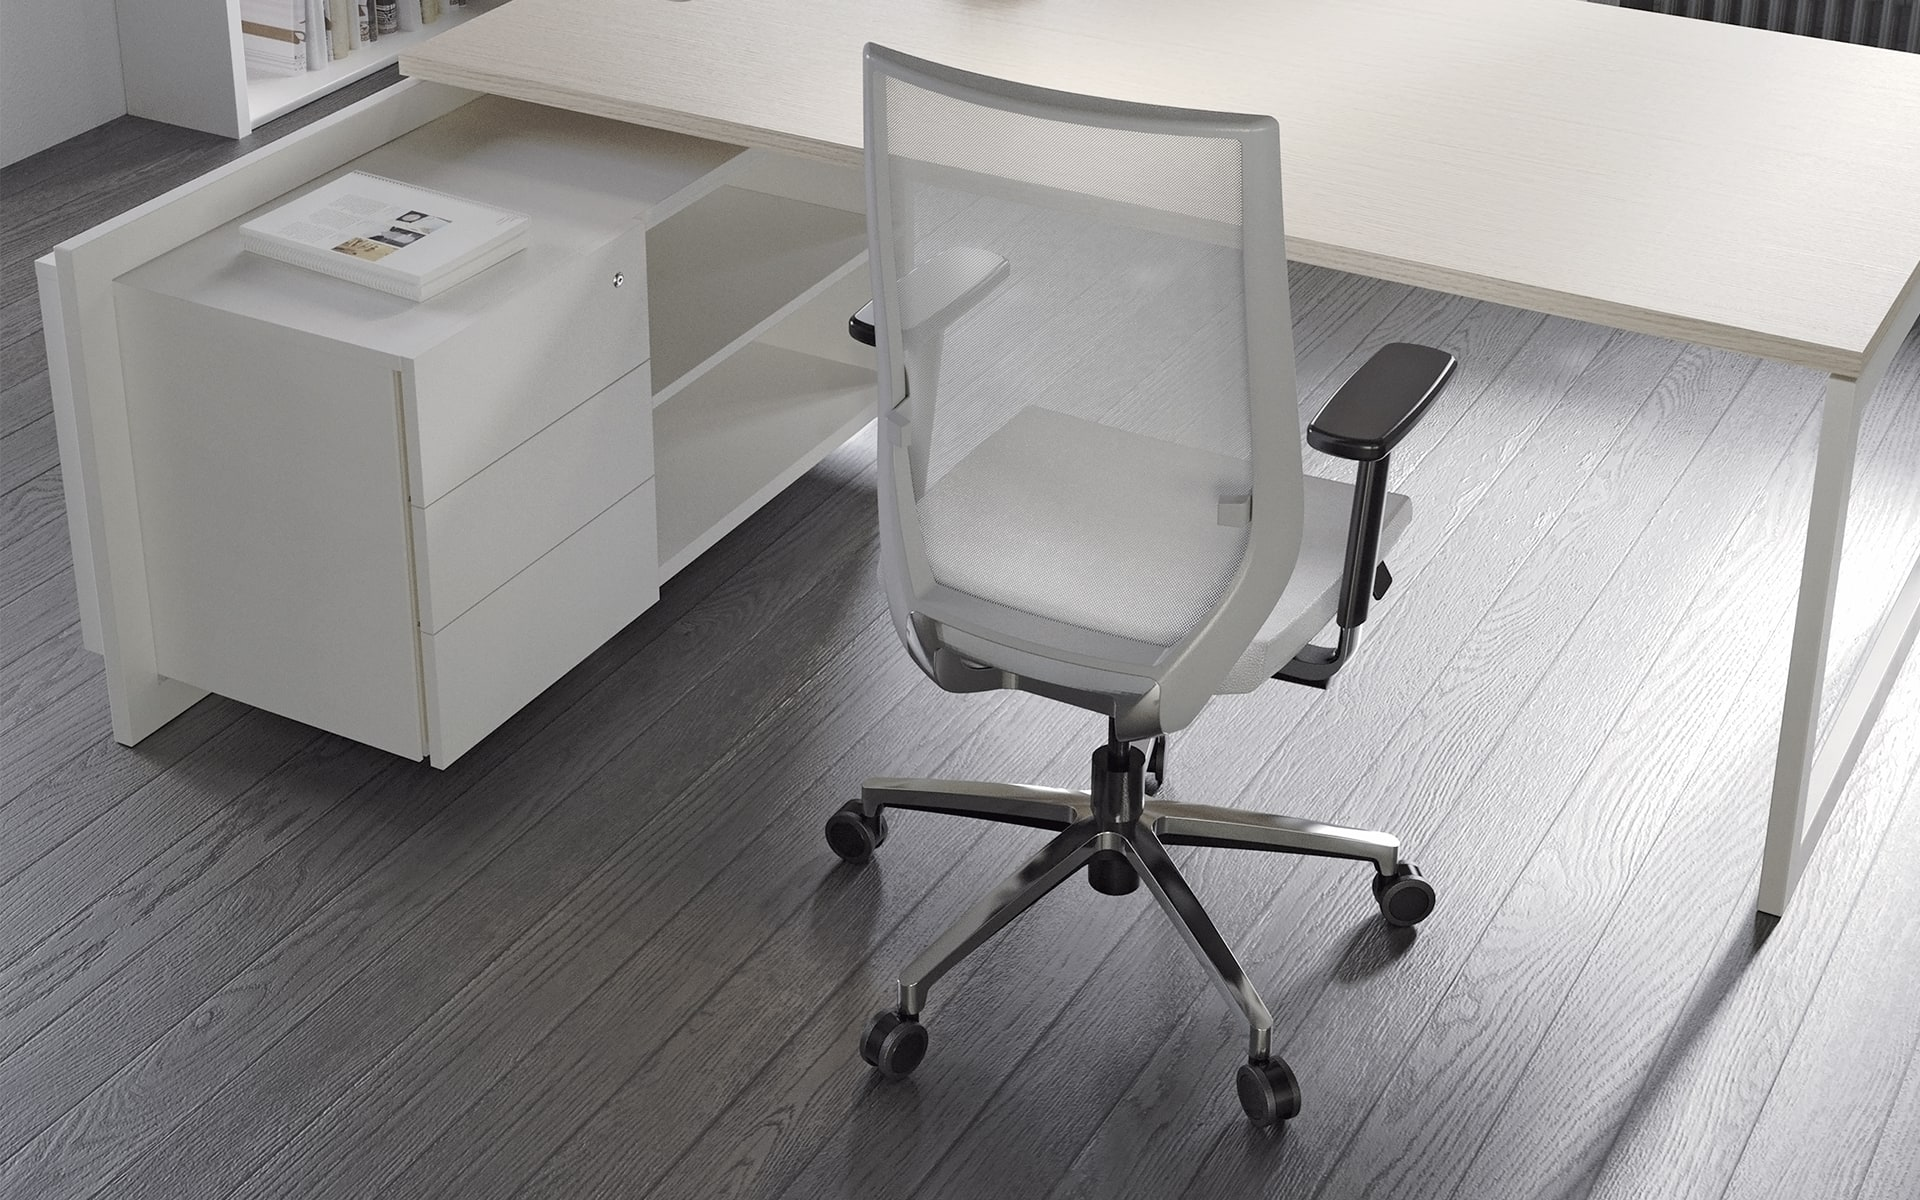 White Forma 5 Eben office chair by ITO Design at minimalist desk